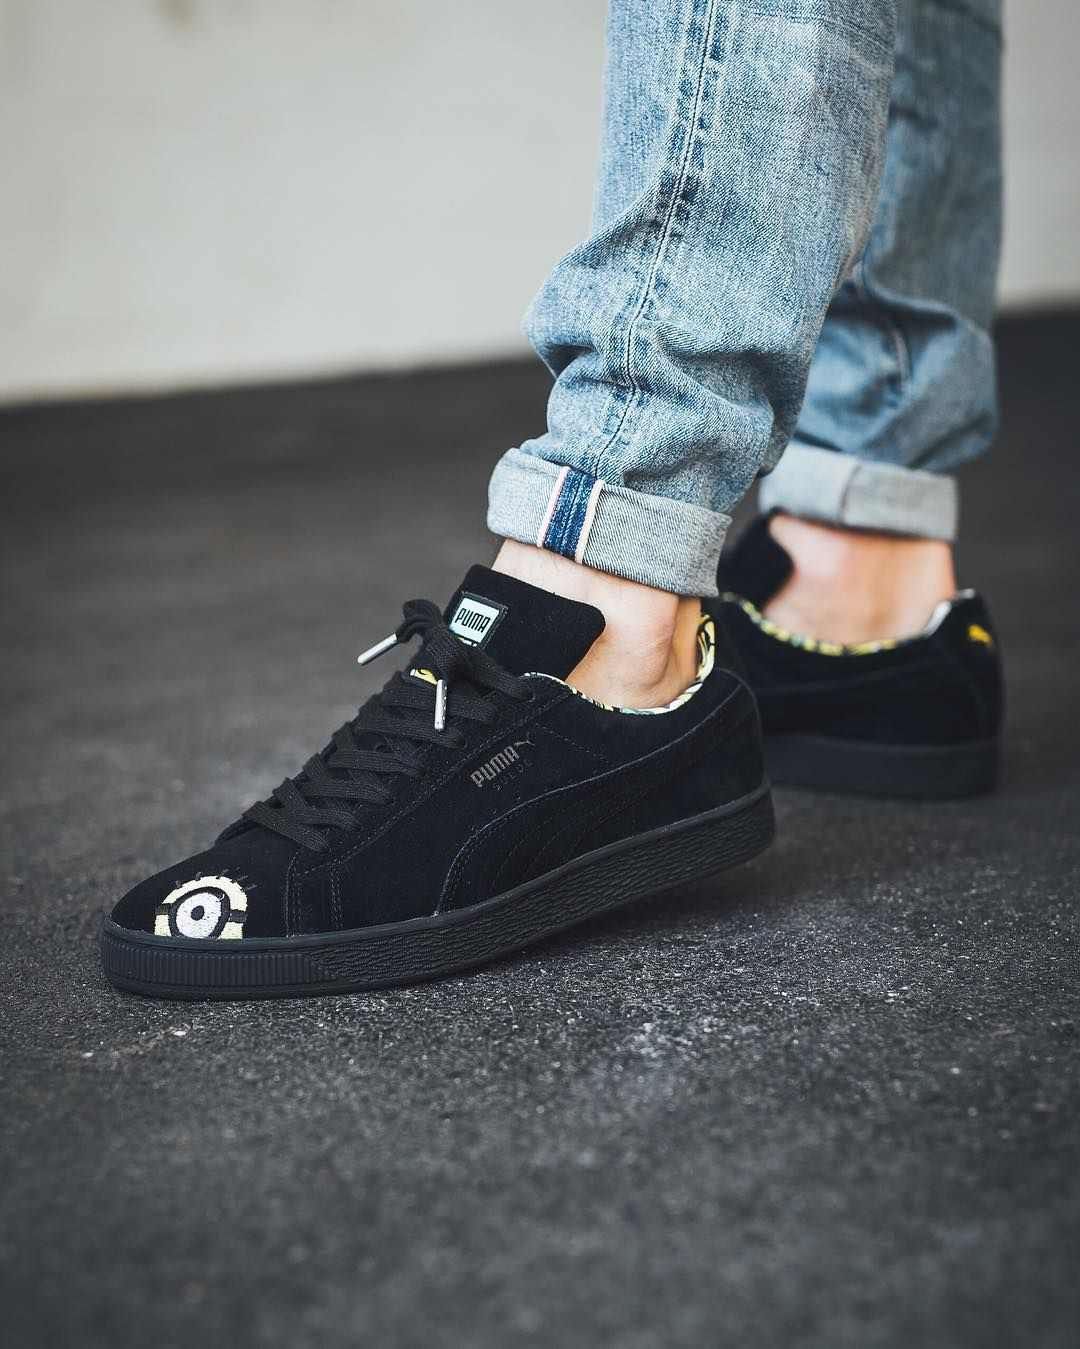 Minions PUMA Suede   All black sneakers